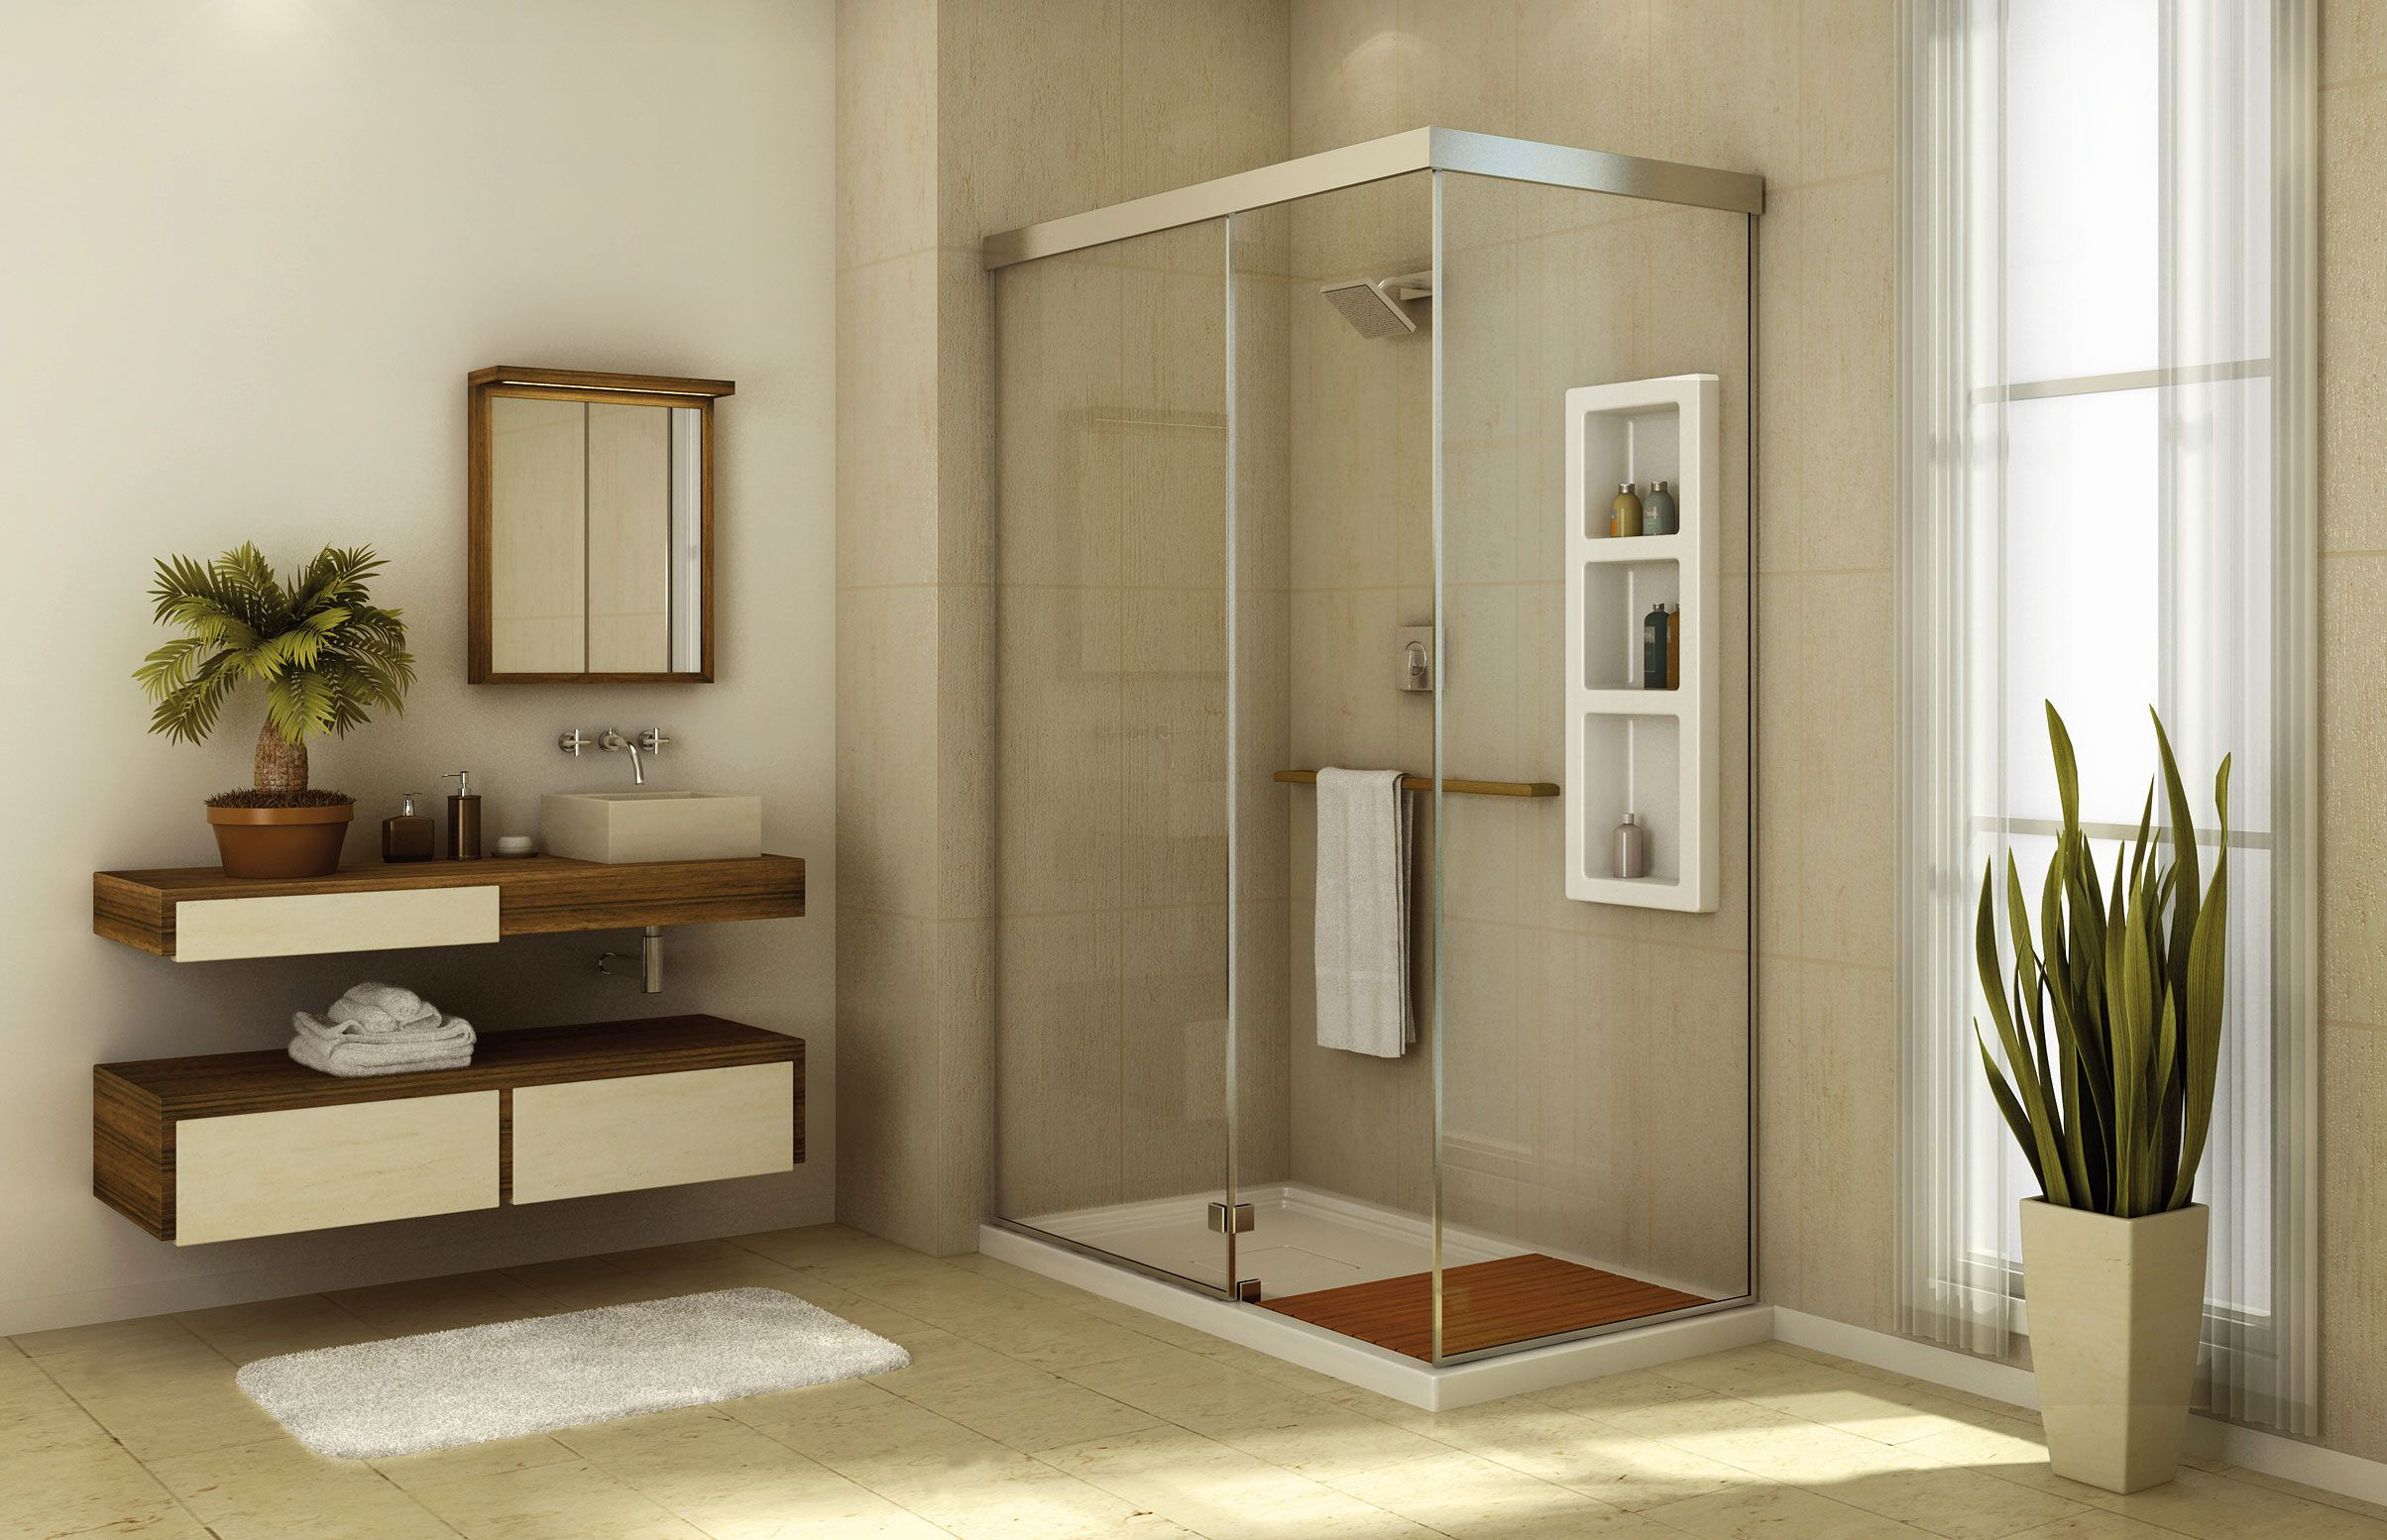 Influence 6034 C Corner or Glass enclosures shower - MAAX | mikes ...